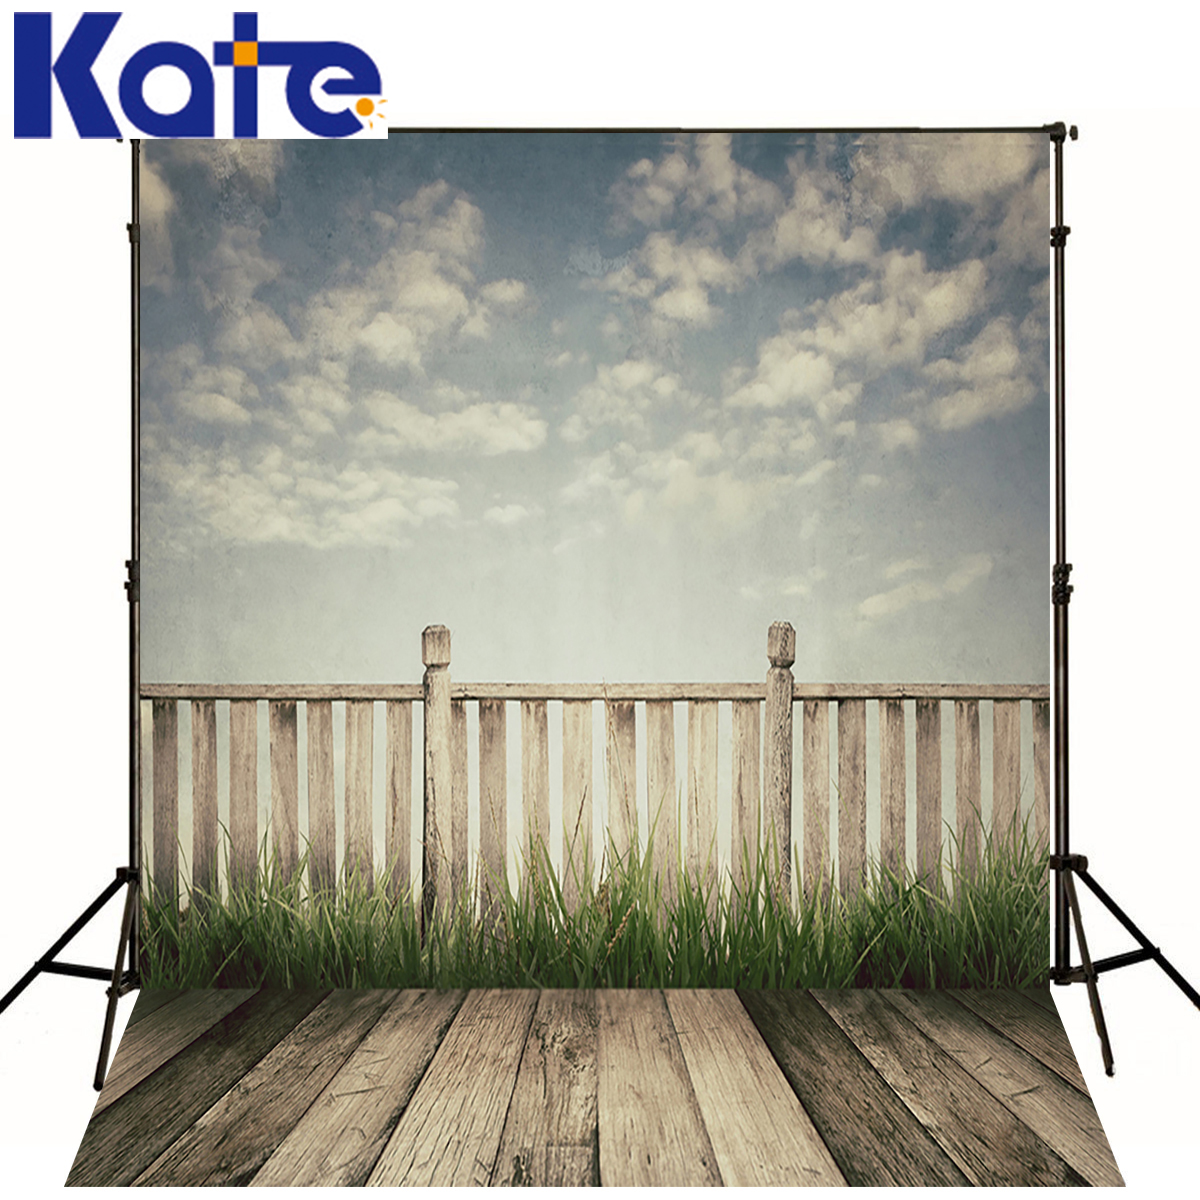 KATE 5X7FT Newborn Baby Background White Cloud and Blue Sky Photography Backdrop Dark Wood Texture Floor For Photo Shoot Studio photo background blue sky white clound photography backdrops newborn hot air balloon fly studio photo backdrop